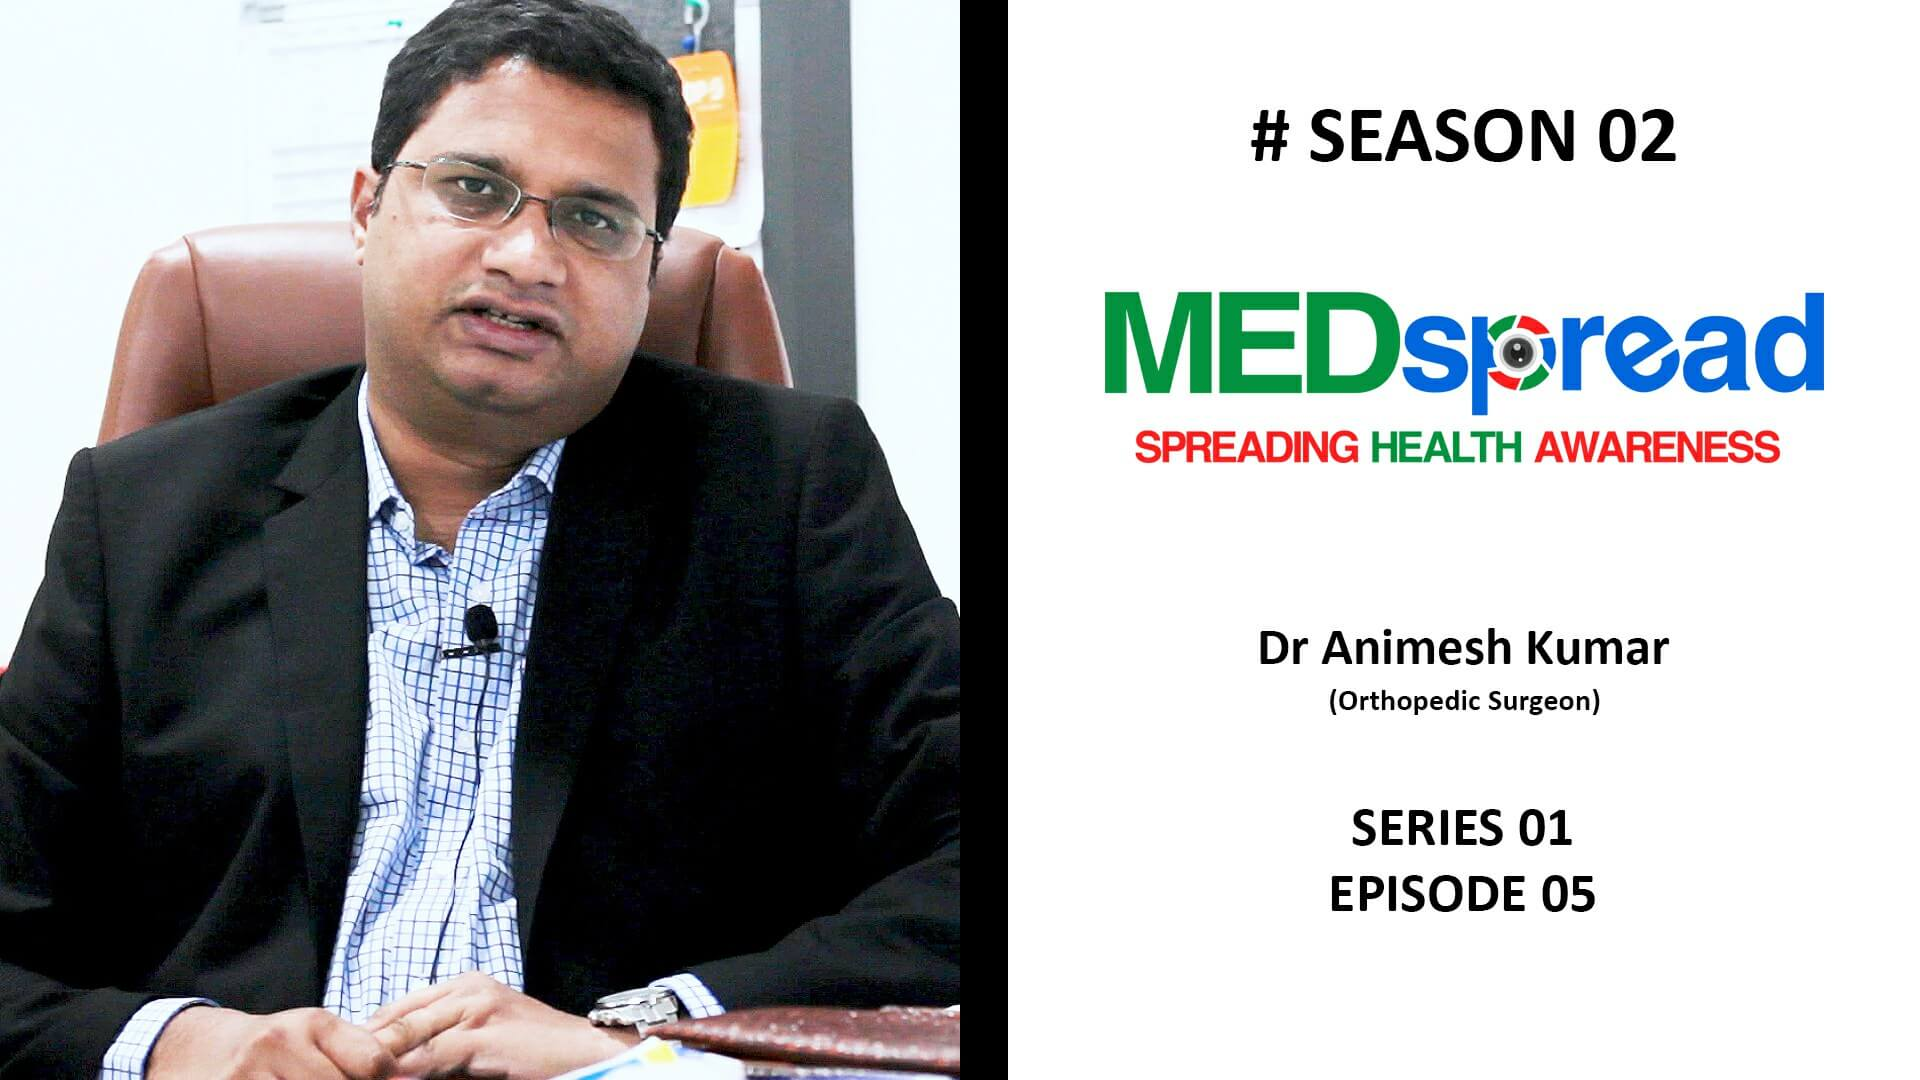 MedSpread Season 2 series 01 Ep 05 | Dr. Animesh Kumar (Orthopedic Surgeon)